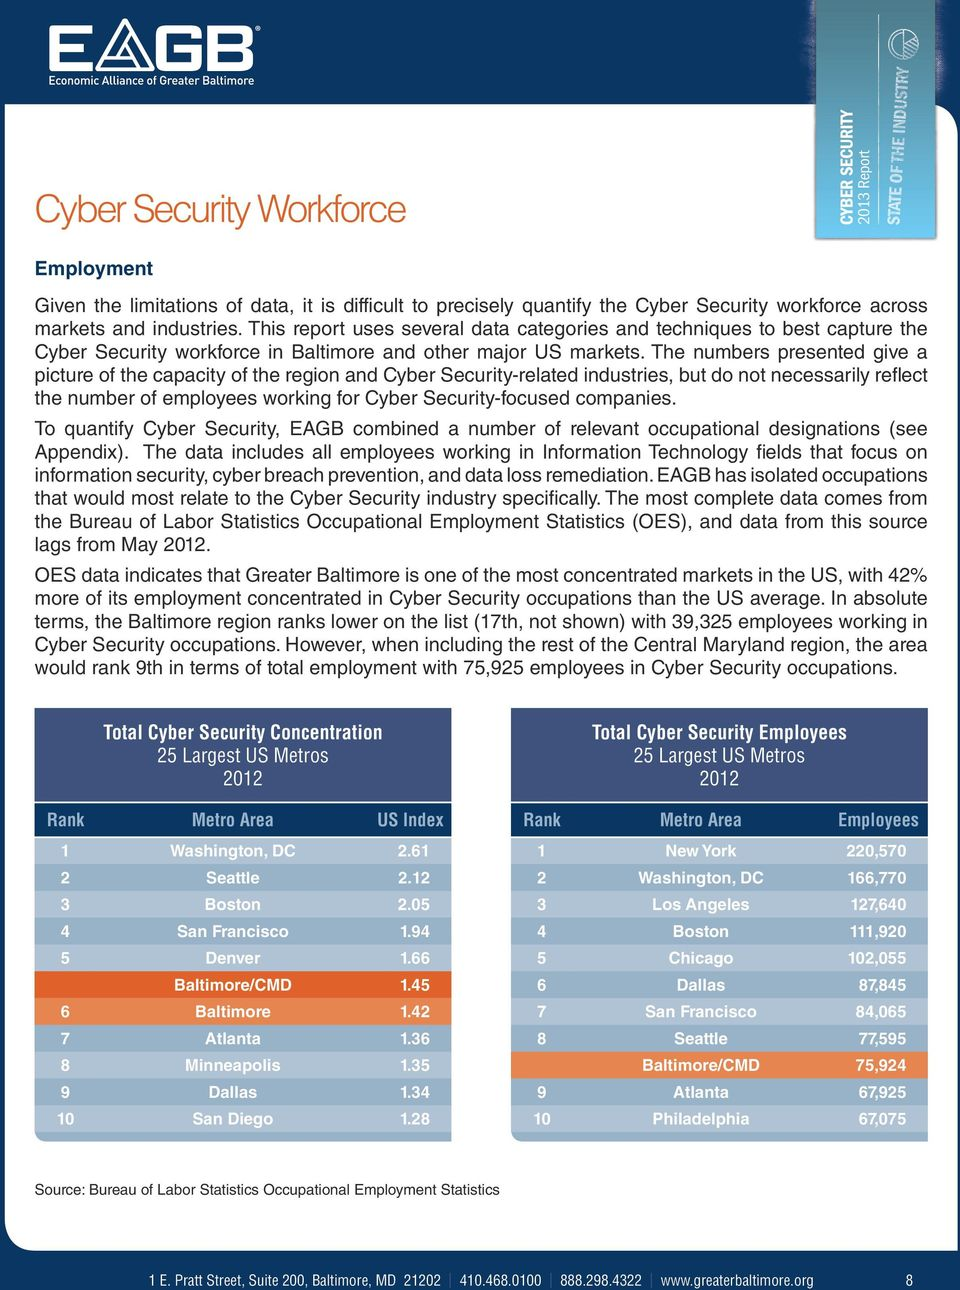 The numbers presented give a picture of the capacity of the region and Cyber Security-related industries, but do not necessarily reflect the number of employees working for Cyber Security-focused